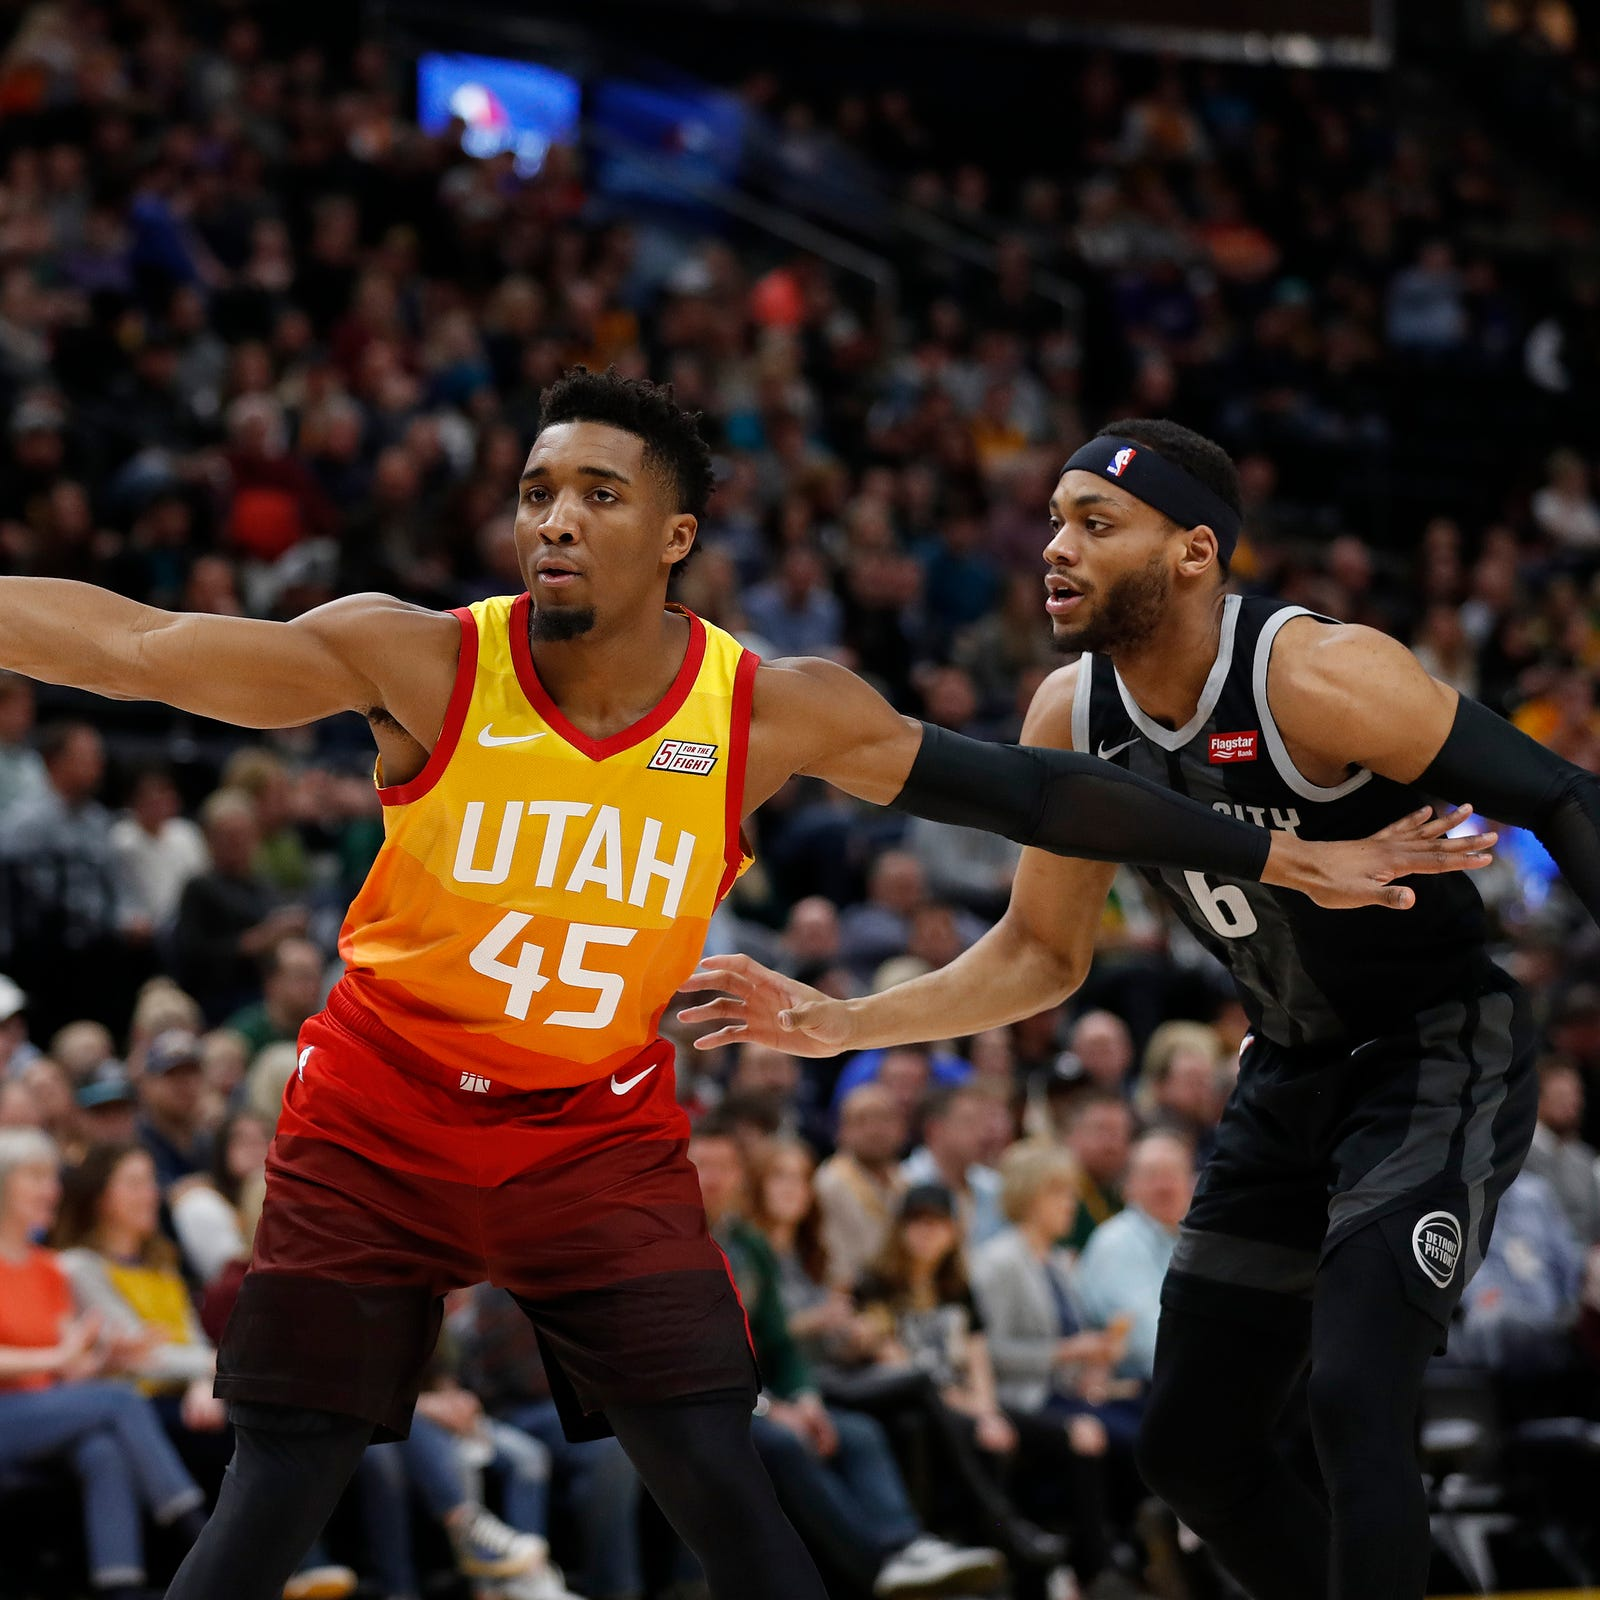 Donovan Mitchell opting out of NBA slam dunk contest a year after winning